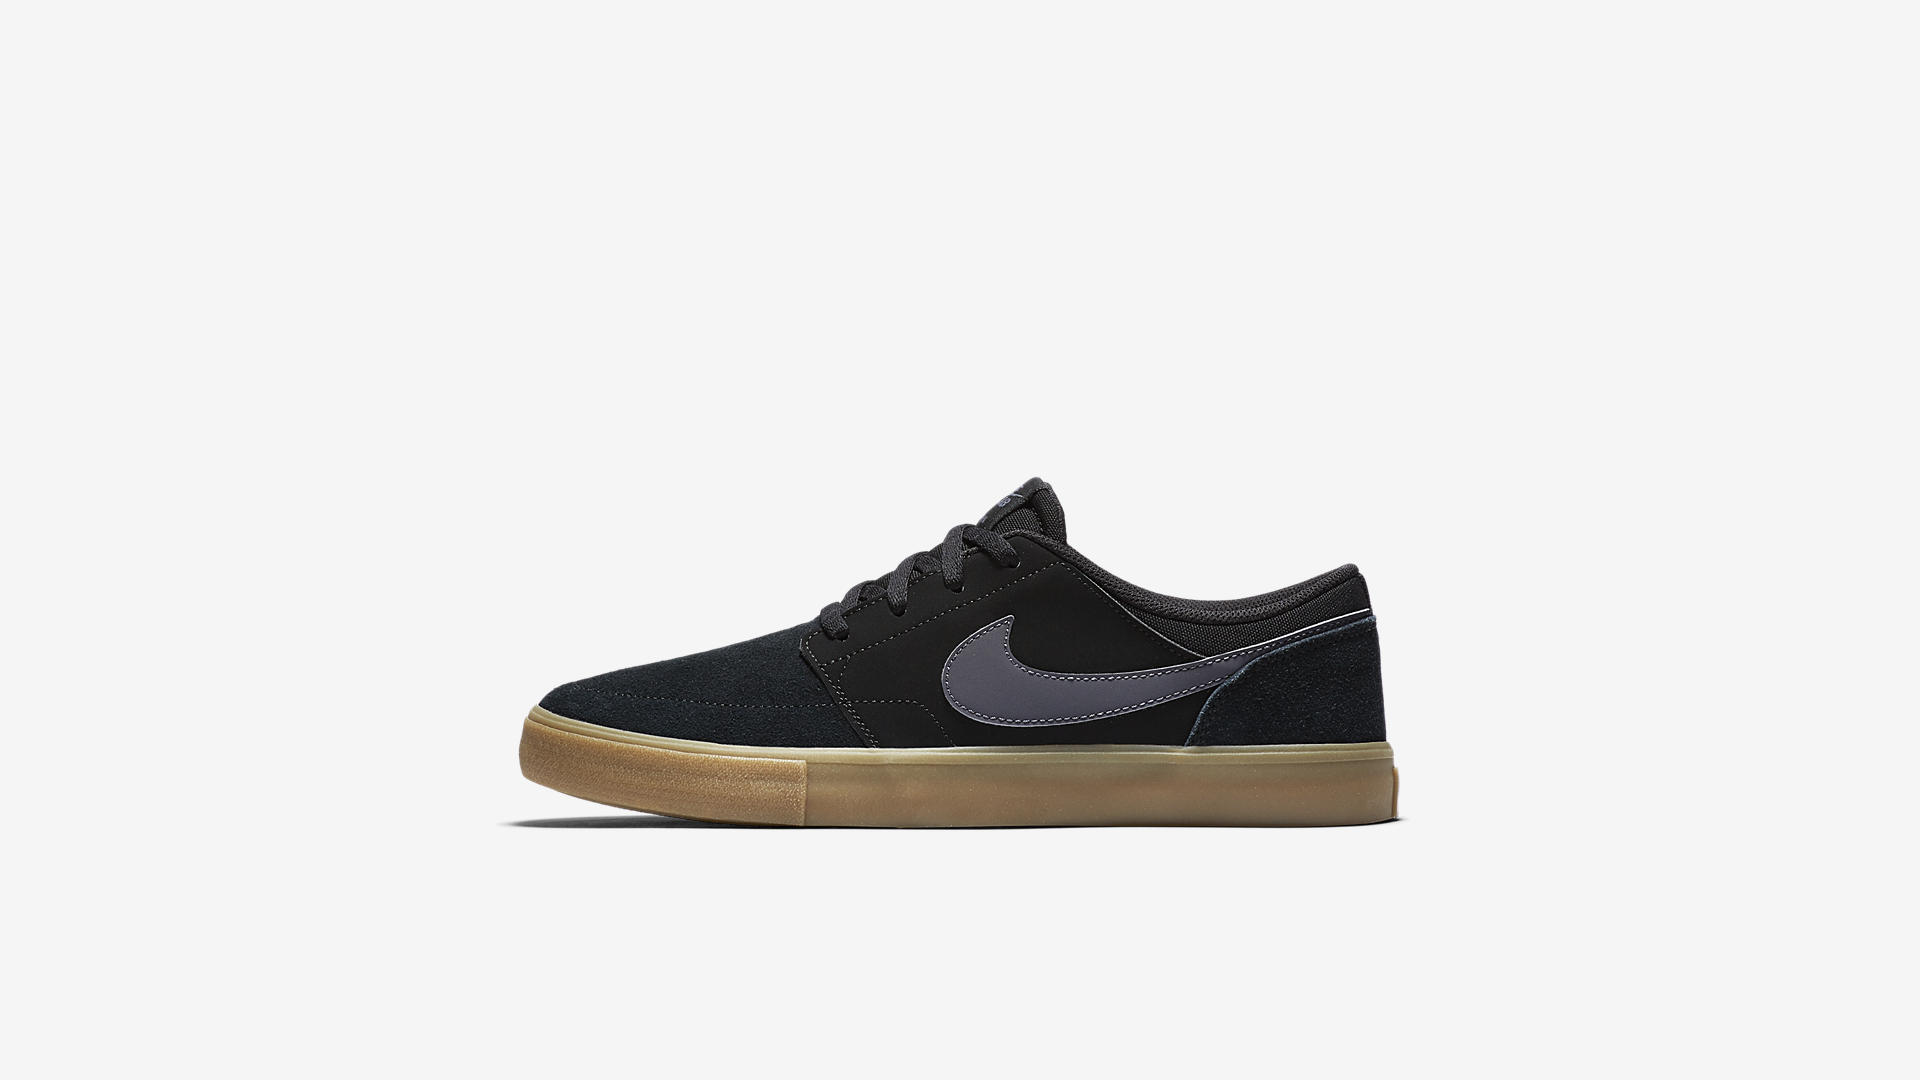 wholesale dealer e8b18 6f0b1 Nike SB | Nike SB sale | Sneakers4u